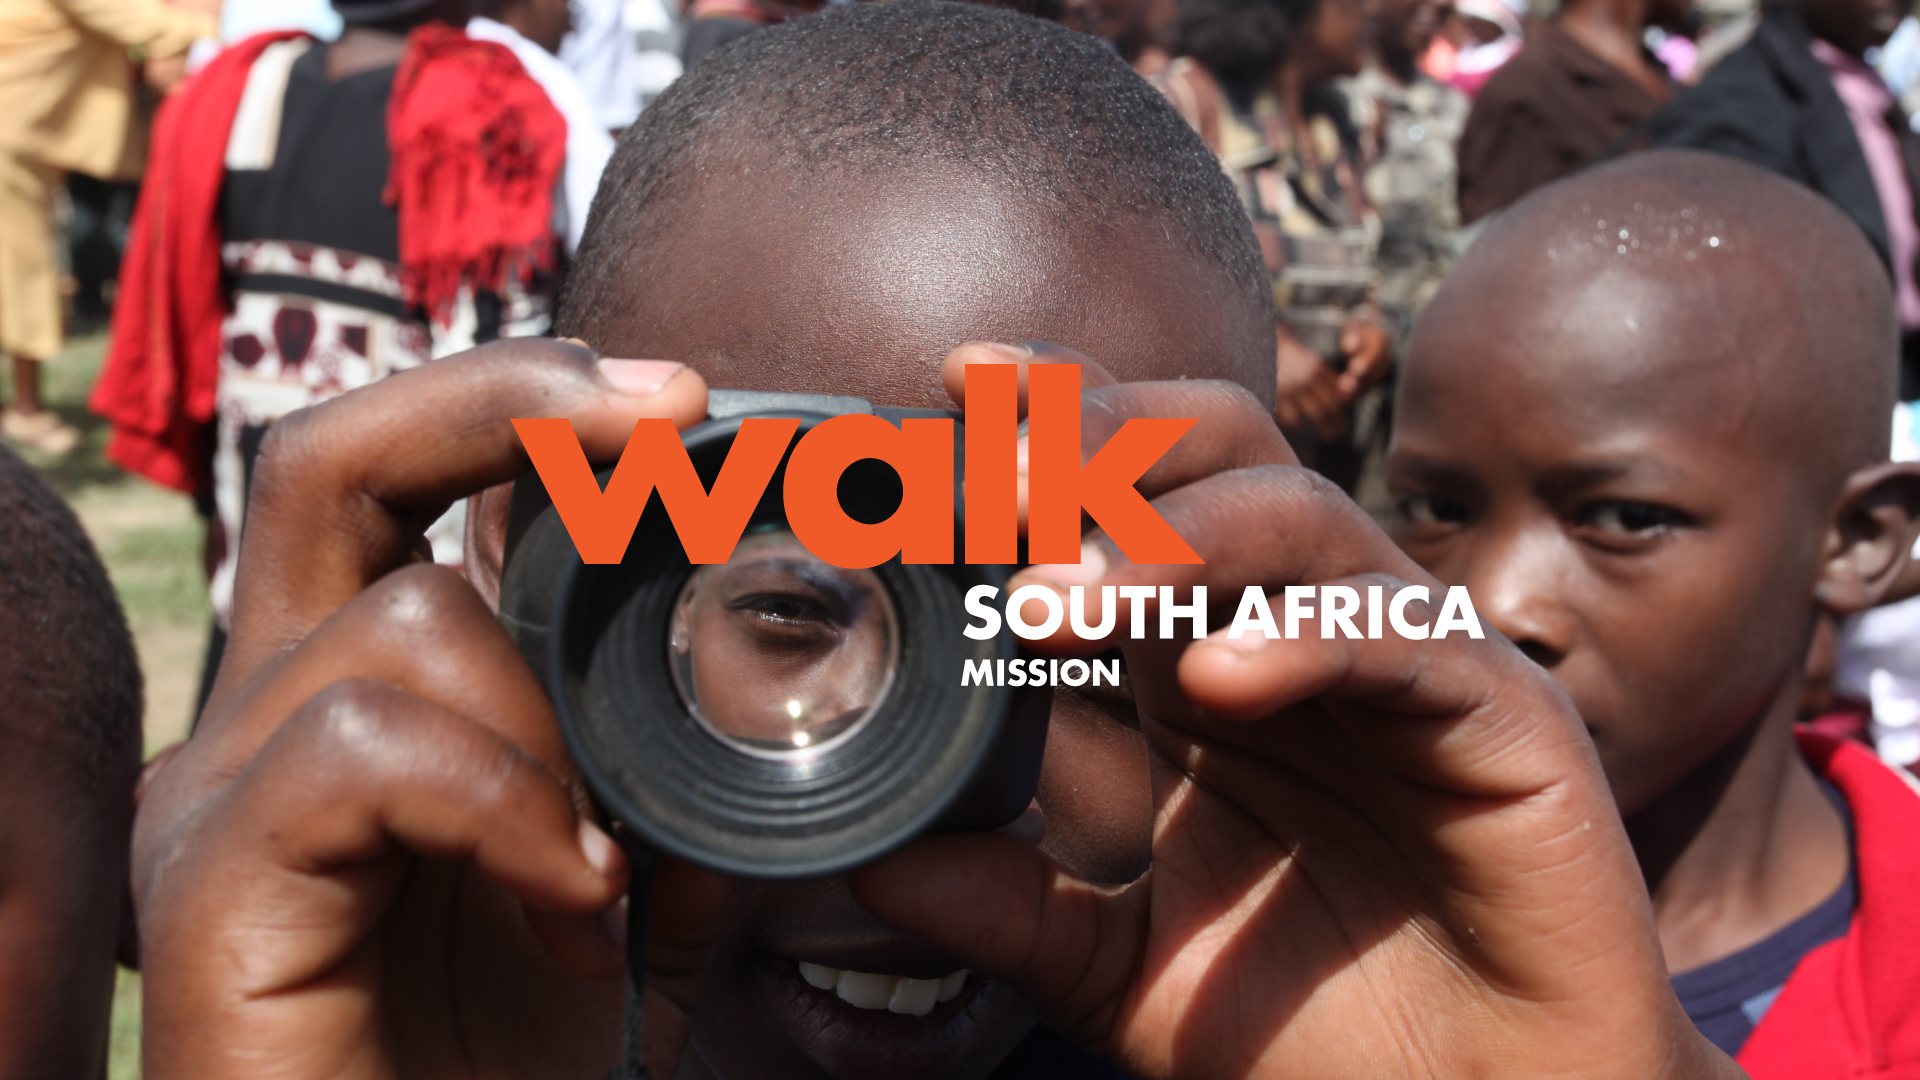 Walk-Missions-South-Africa.jpg